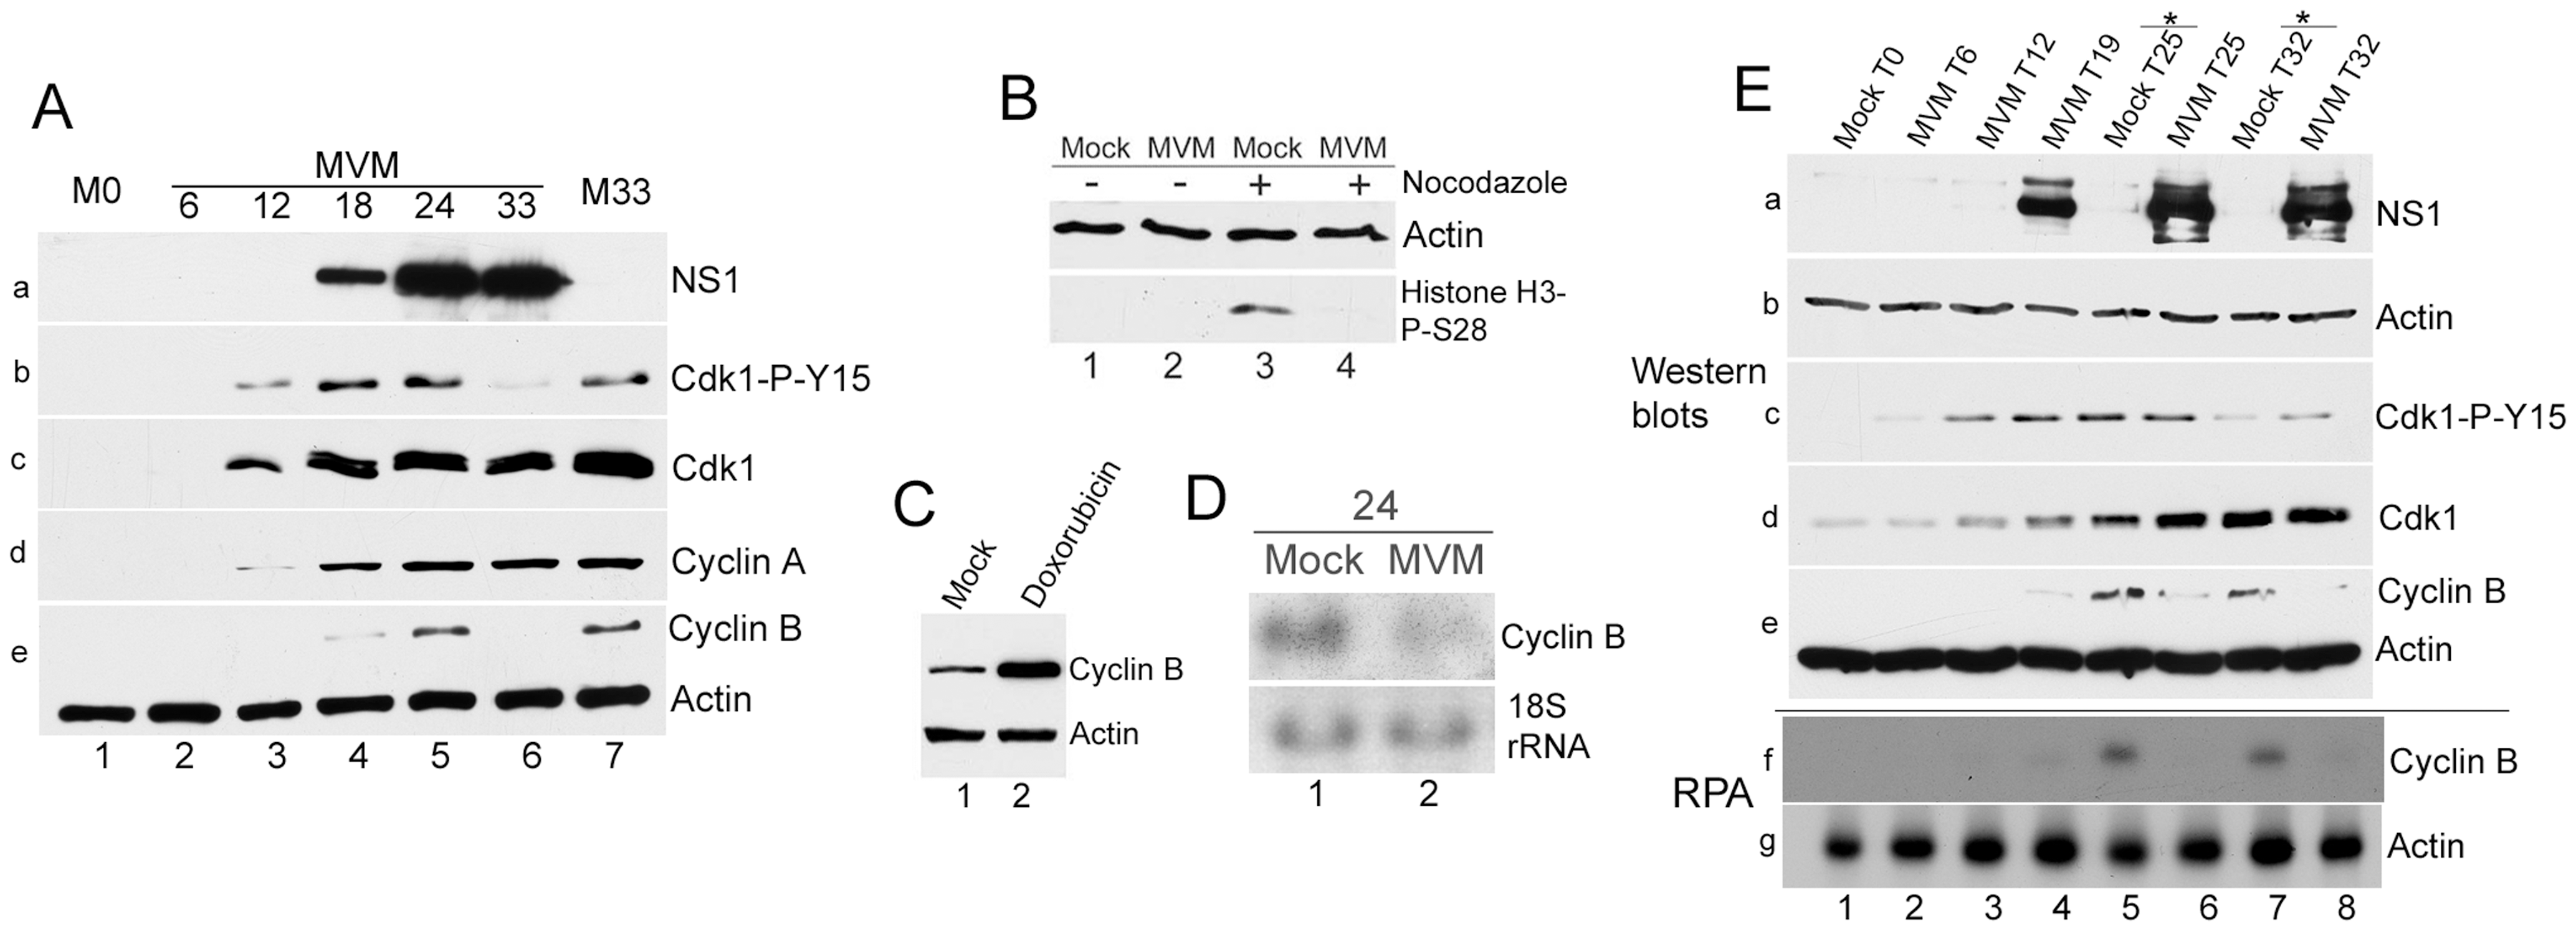 Virus-mediated downregulation of cyclin B1 RNA prevents mitotic entry.